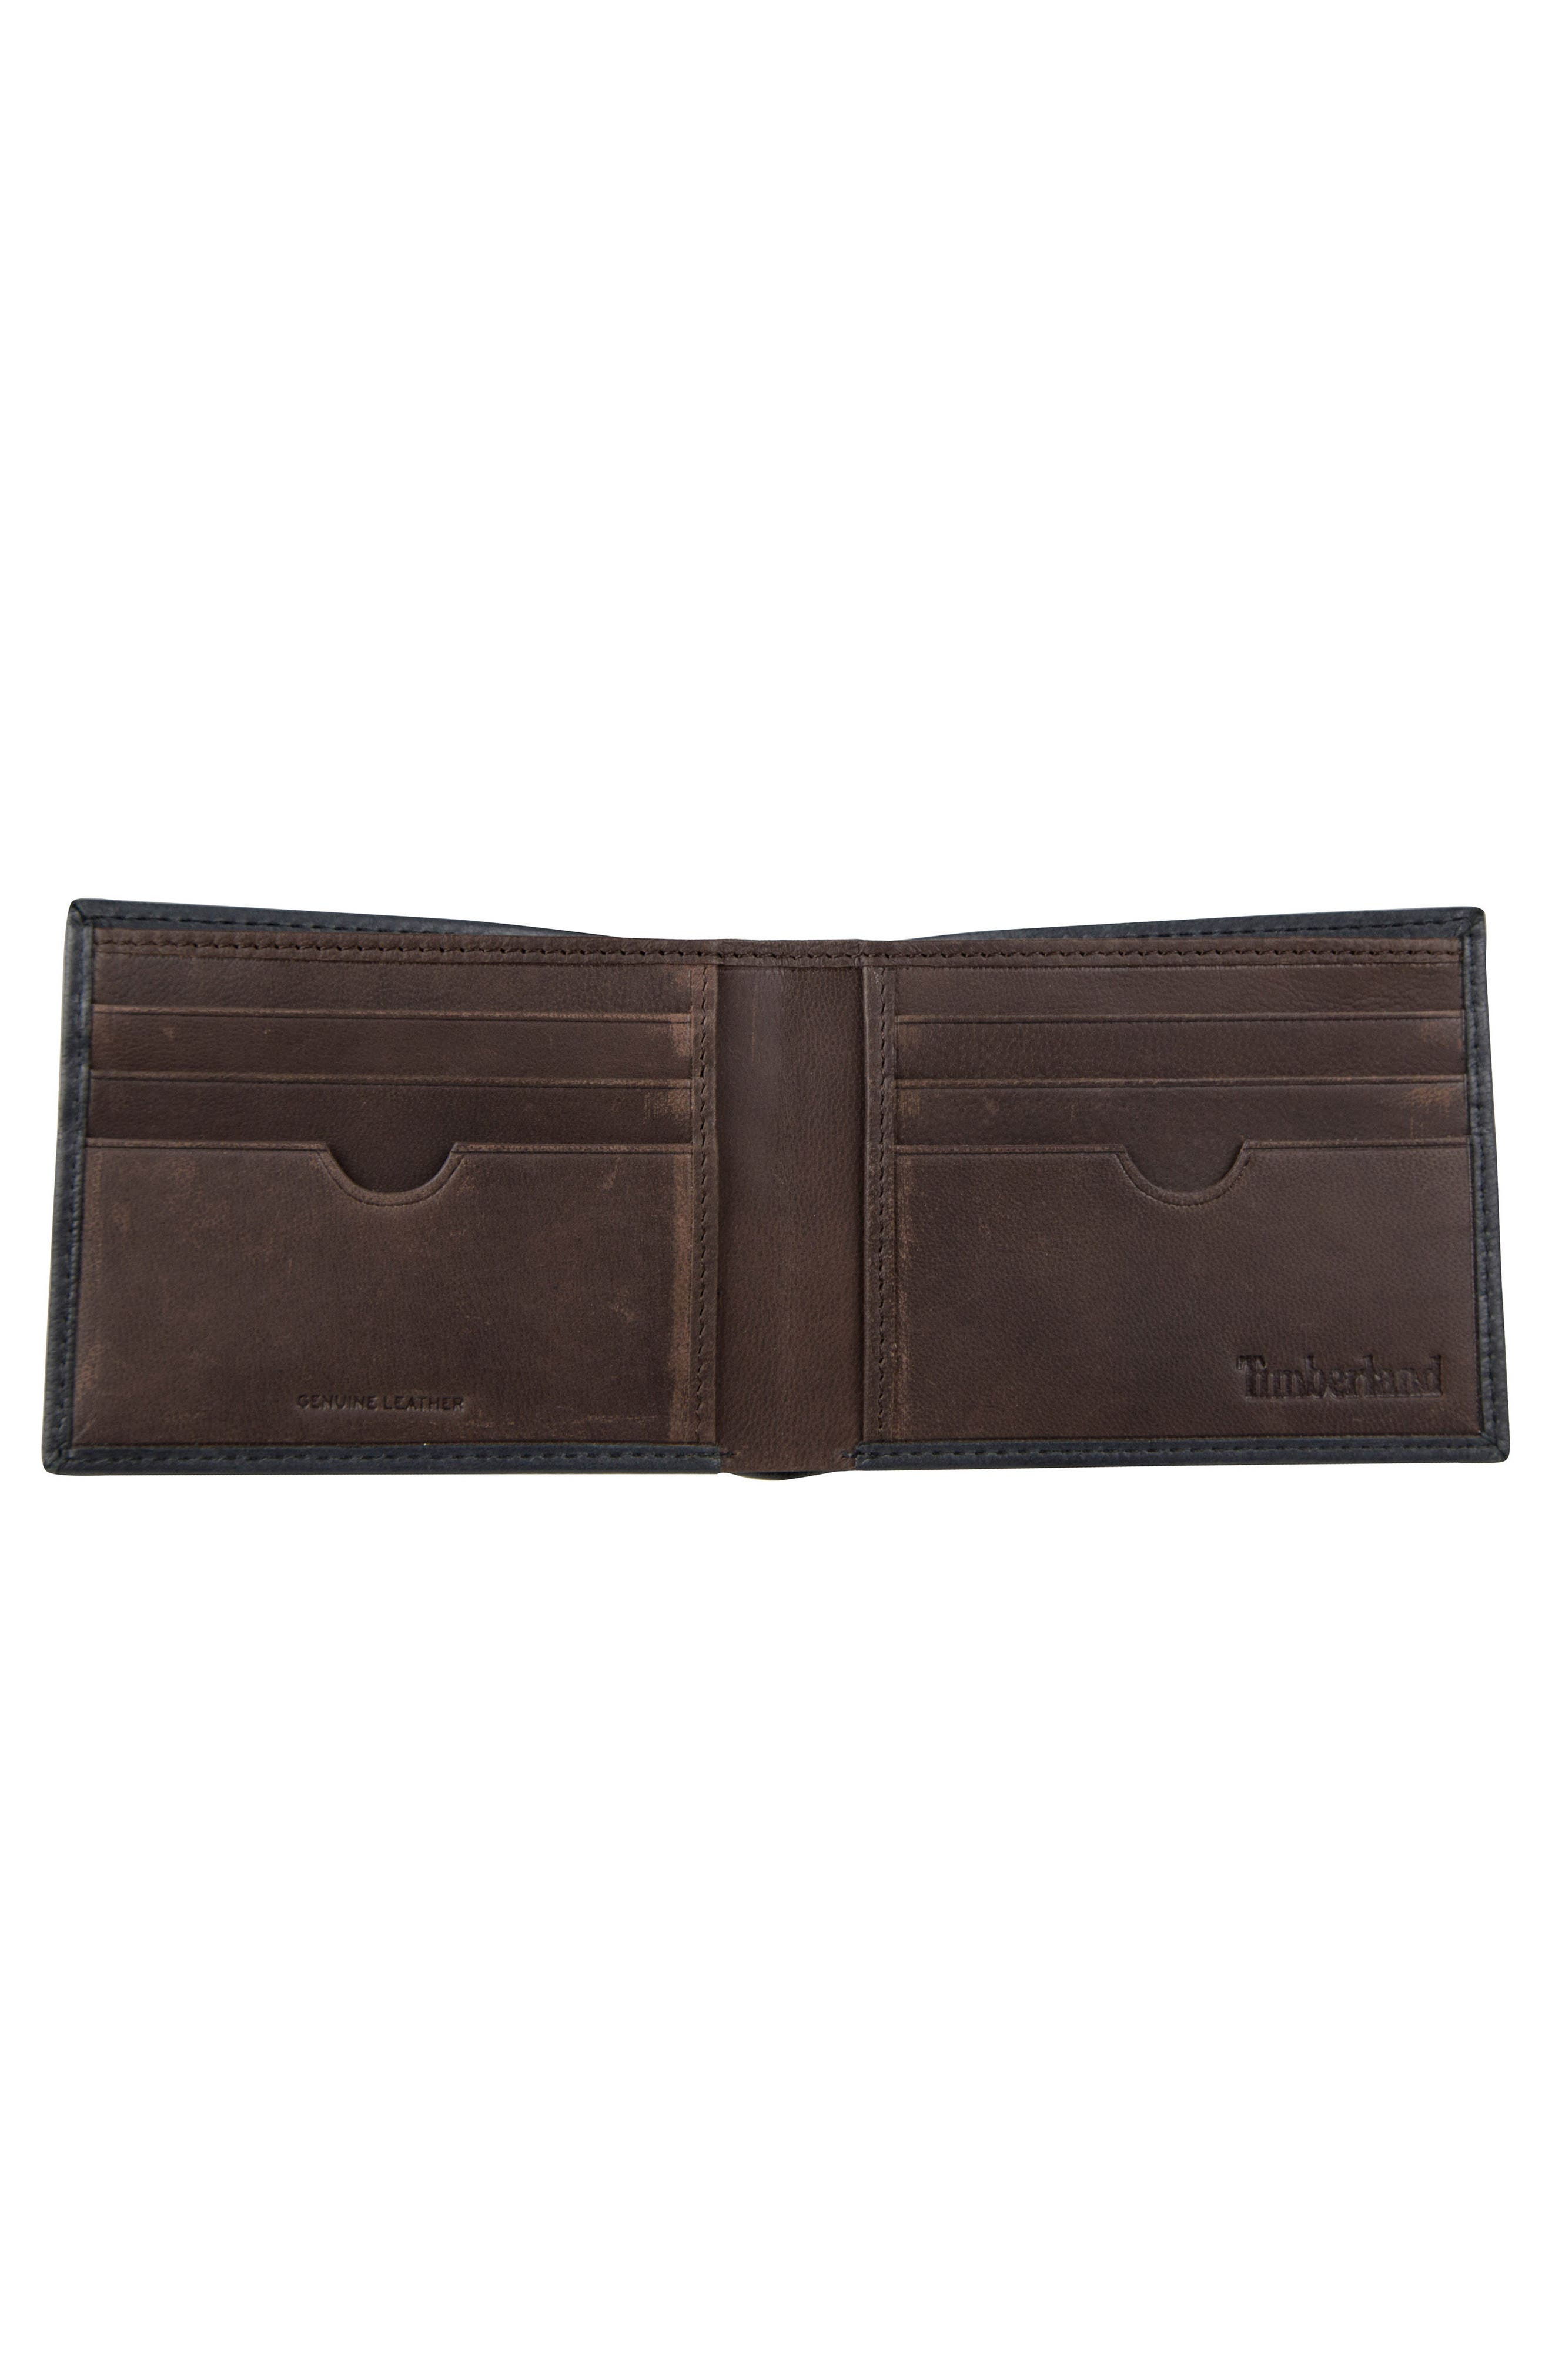 Cloudy Leather Wallet,                             Alternate thumbnail 2, color,                             BLACK